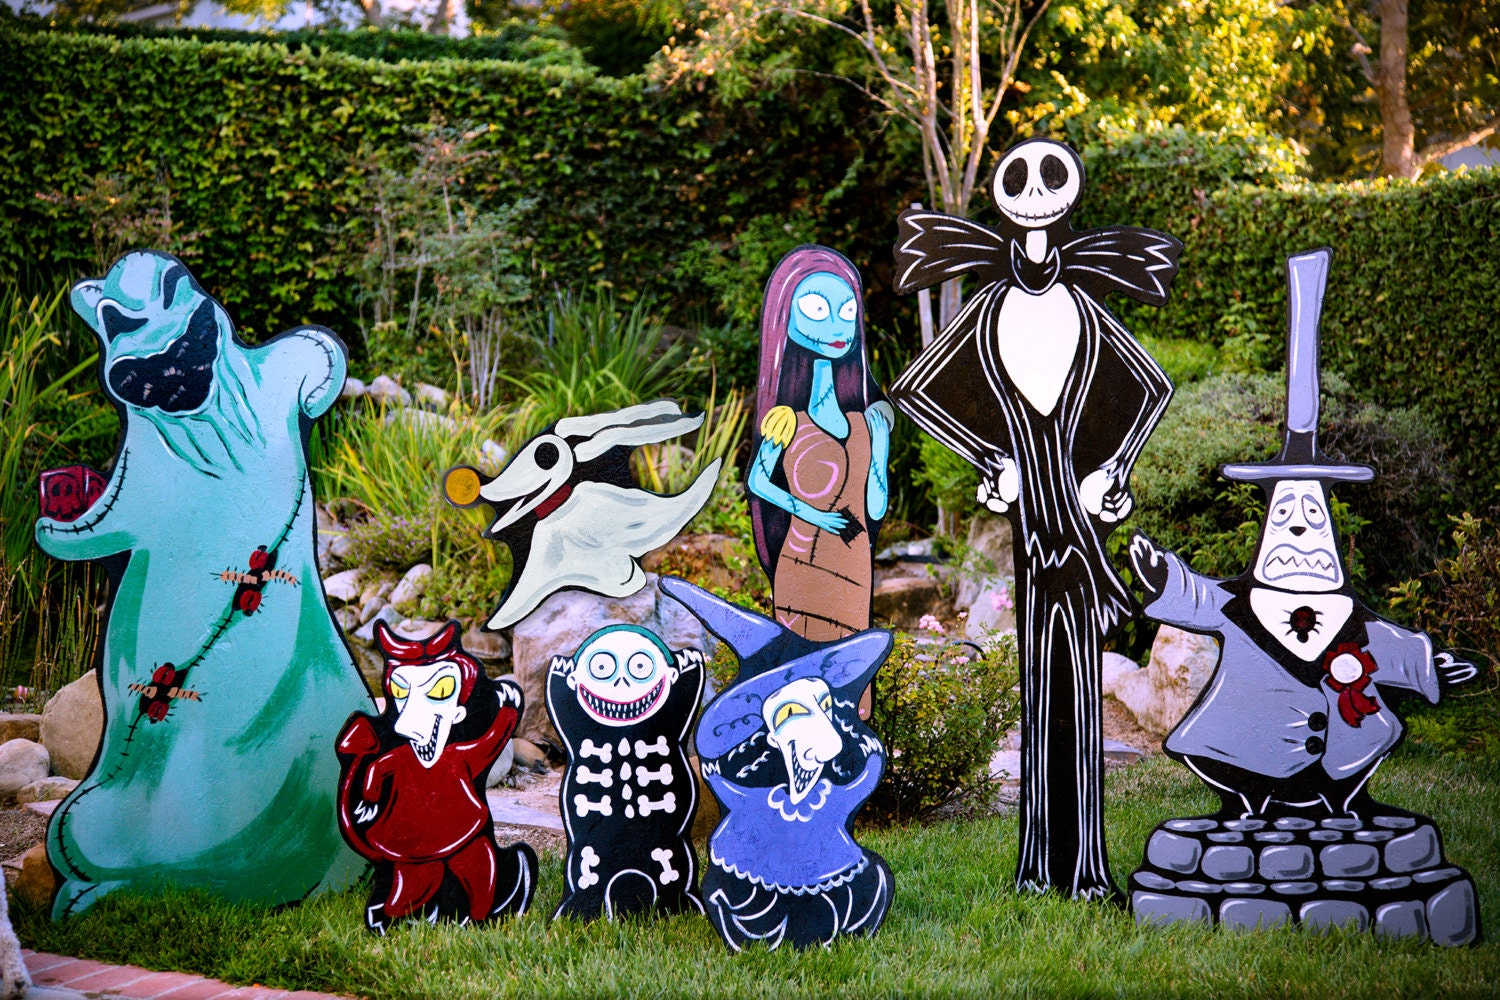 Nightmare Before Christmas Lawn decorations | Etsy